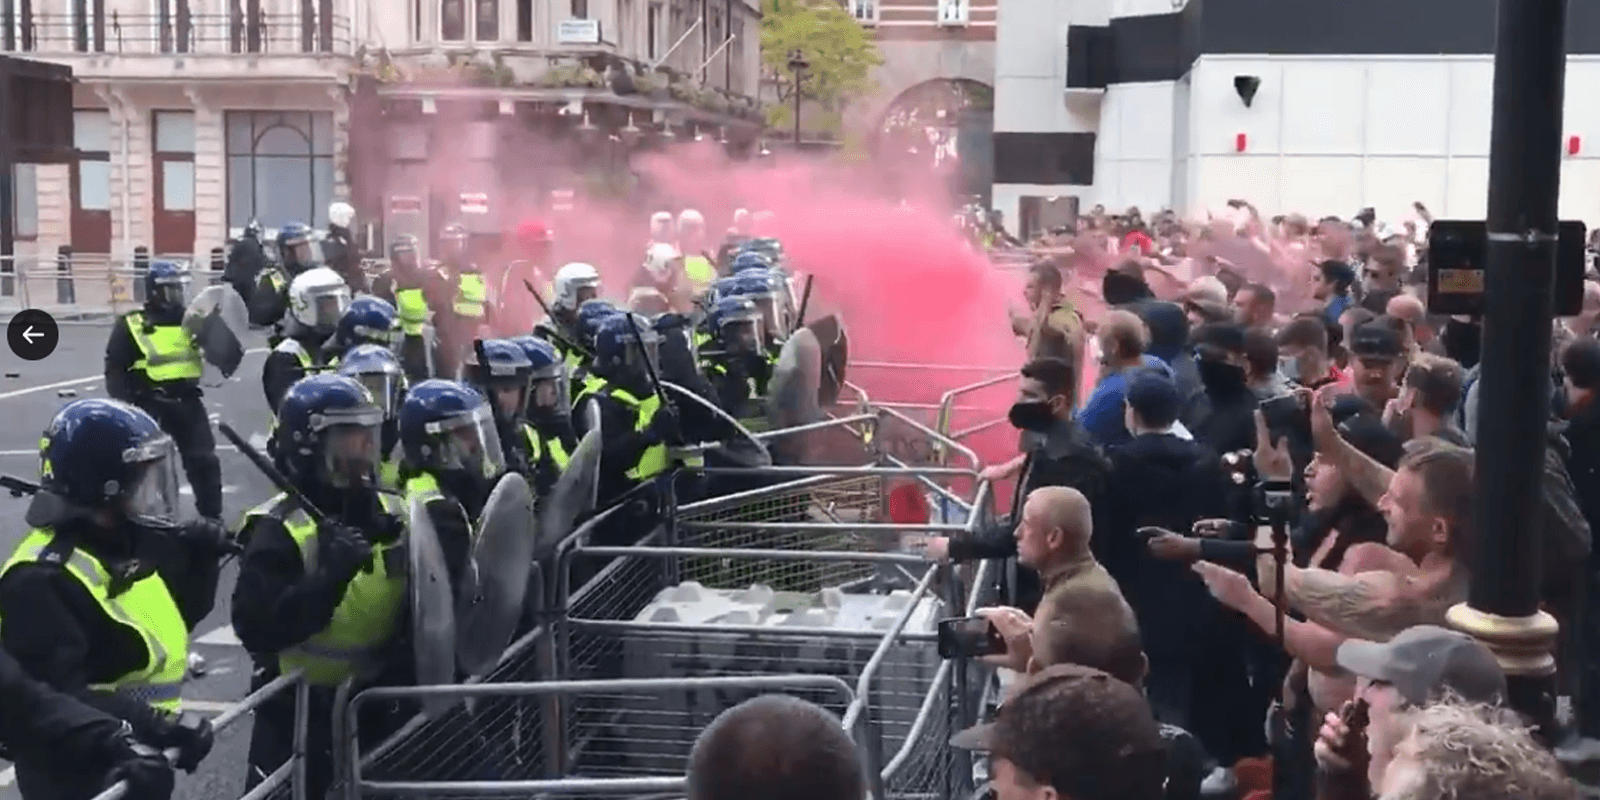 Counter-protesters step up to protect historical monuments against Antifa in London